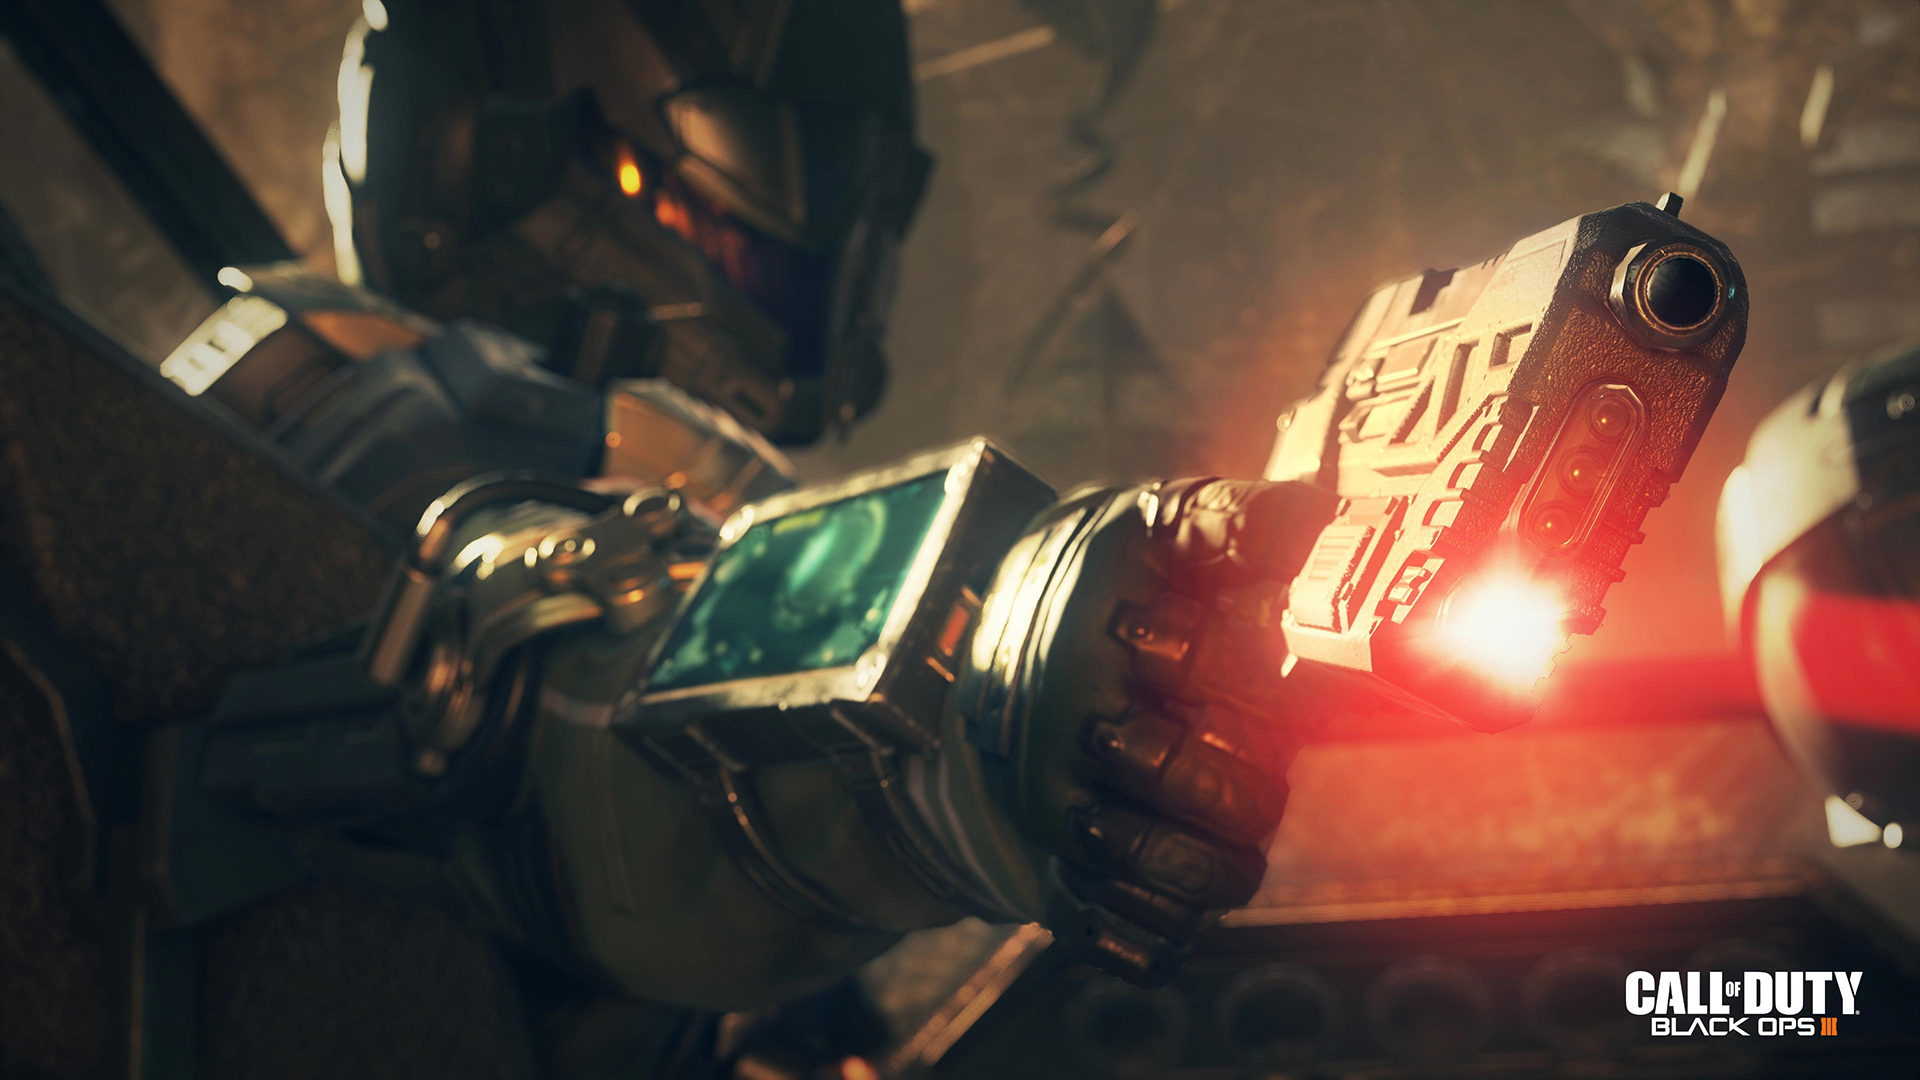 Call Of Duty: Black Ops 3 Screenshots Introduce Super-Soldiers And Robots  #32762